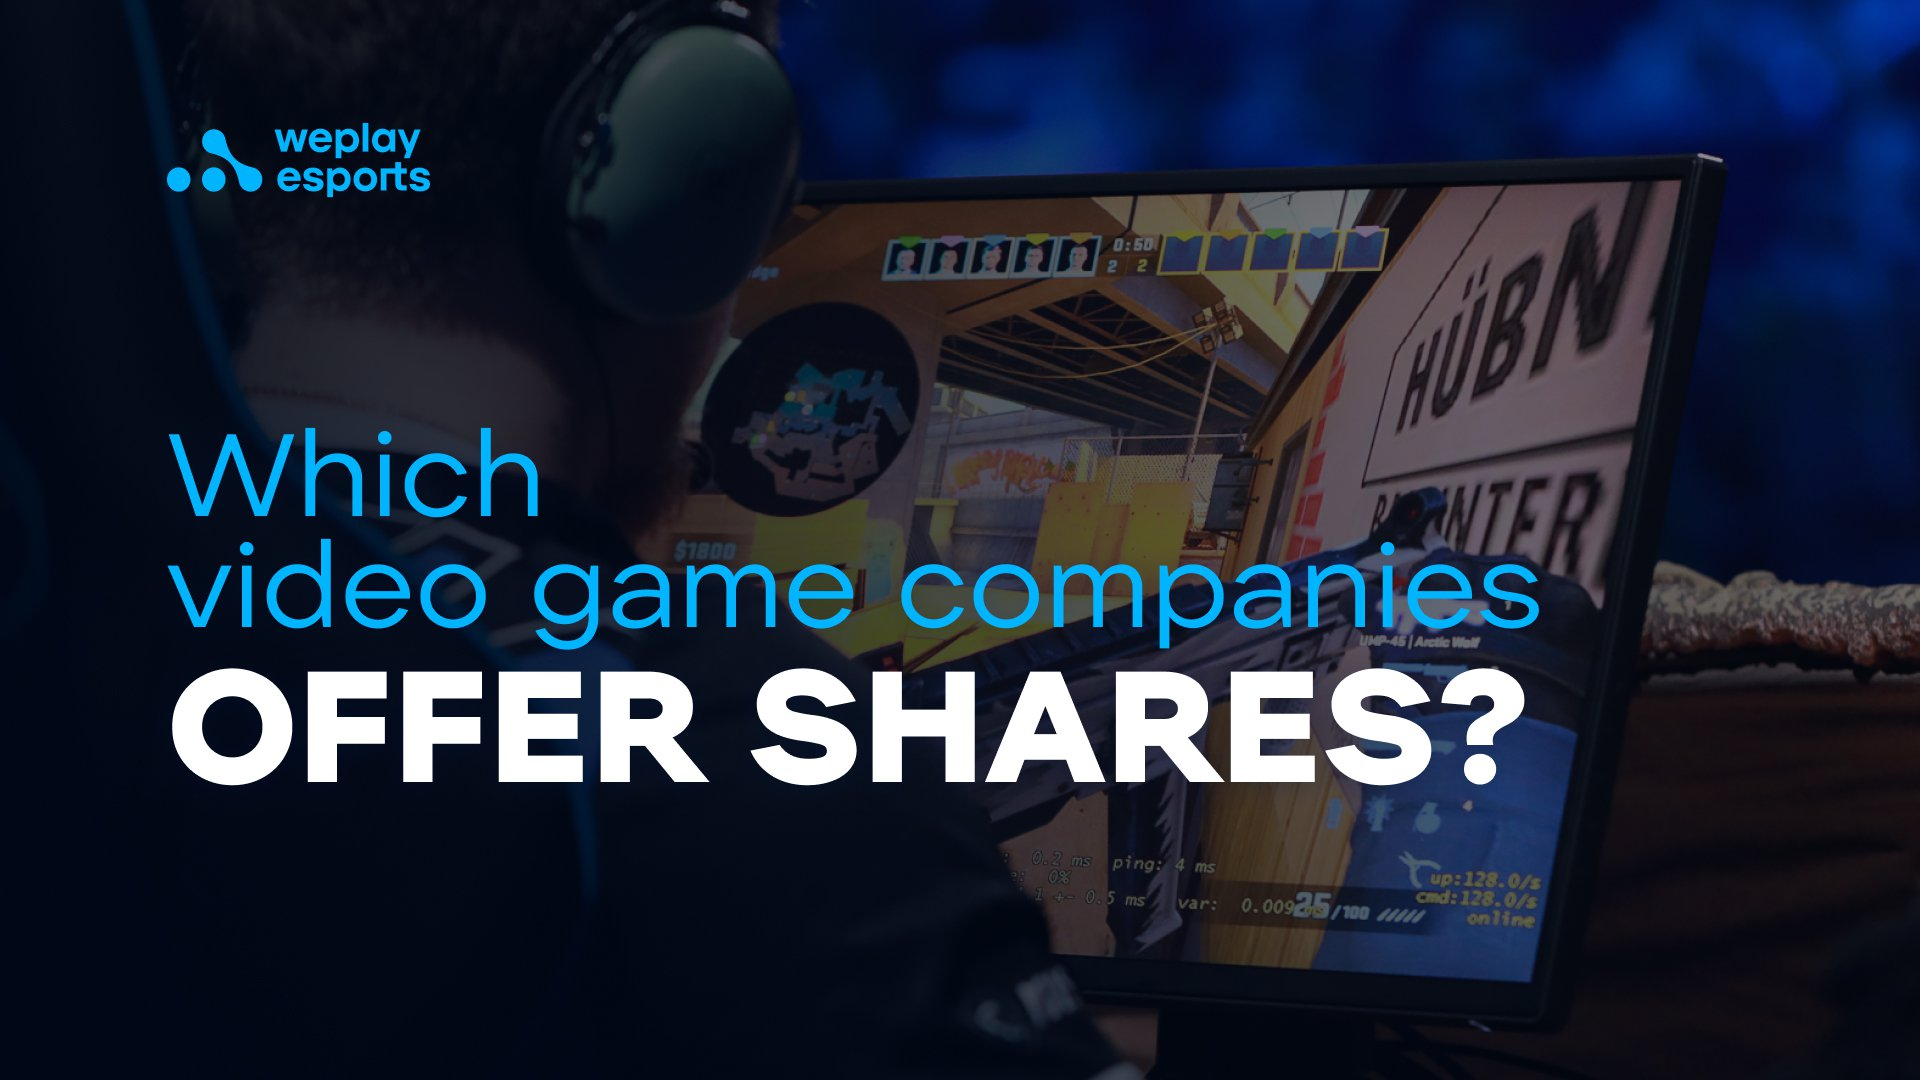 Which video game companies offer shares?